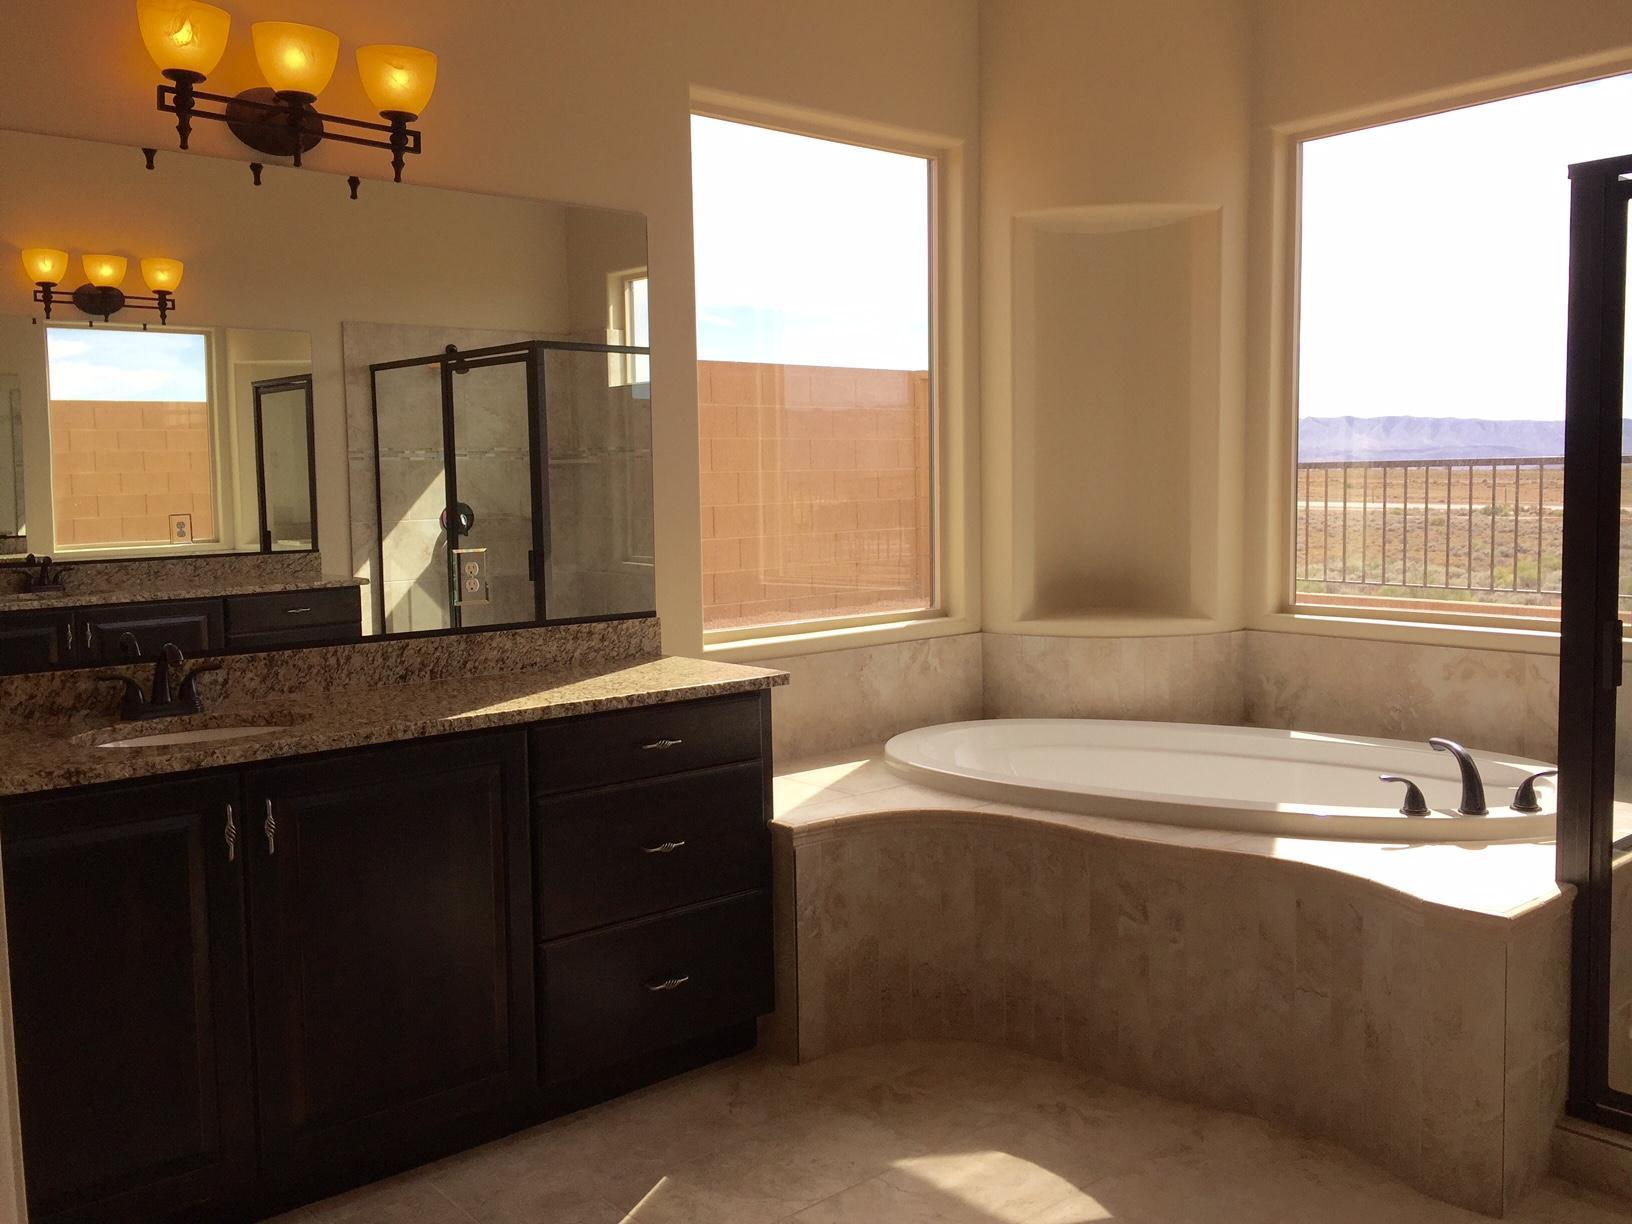 Bathroom featured in the 2550 WR By S & S Homes in St. George, UT